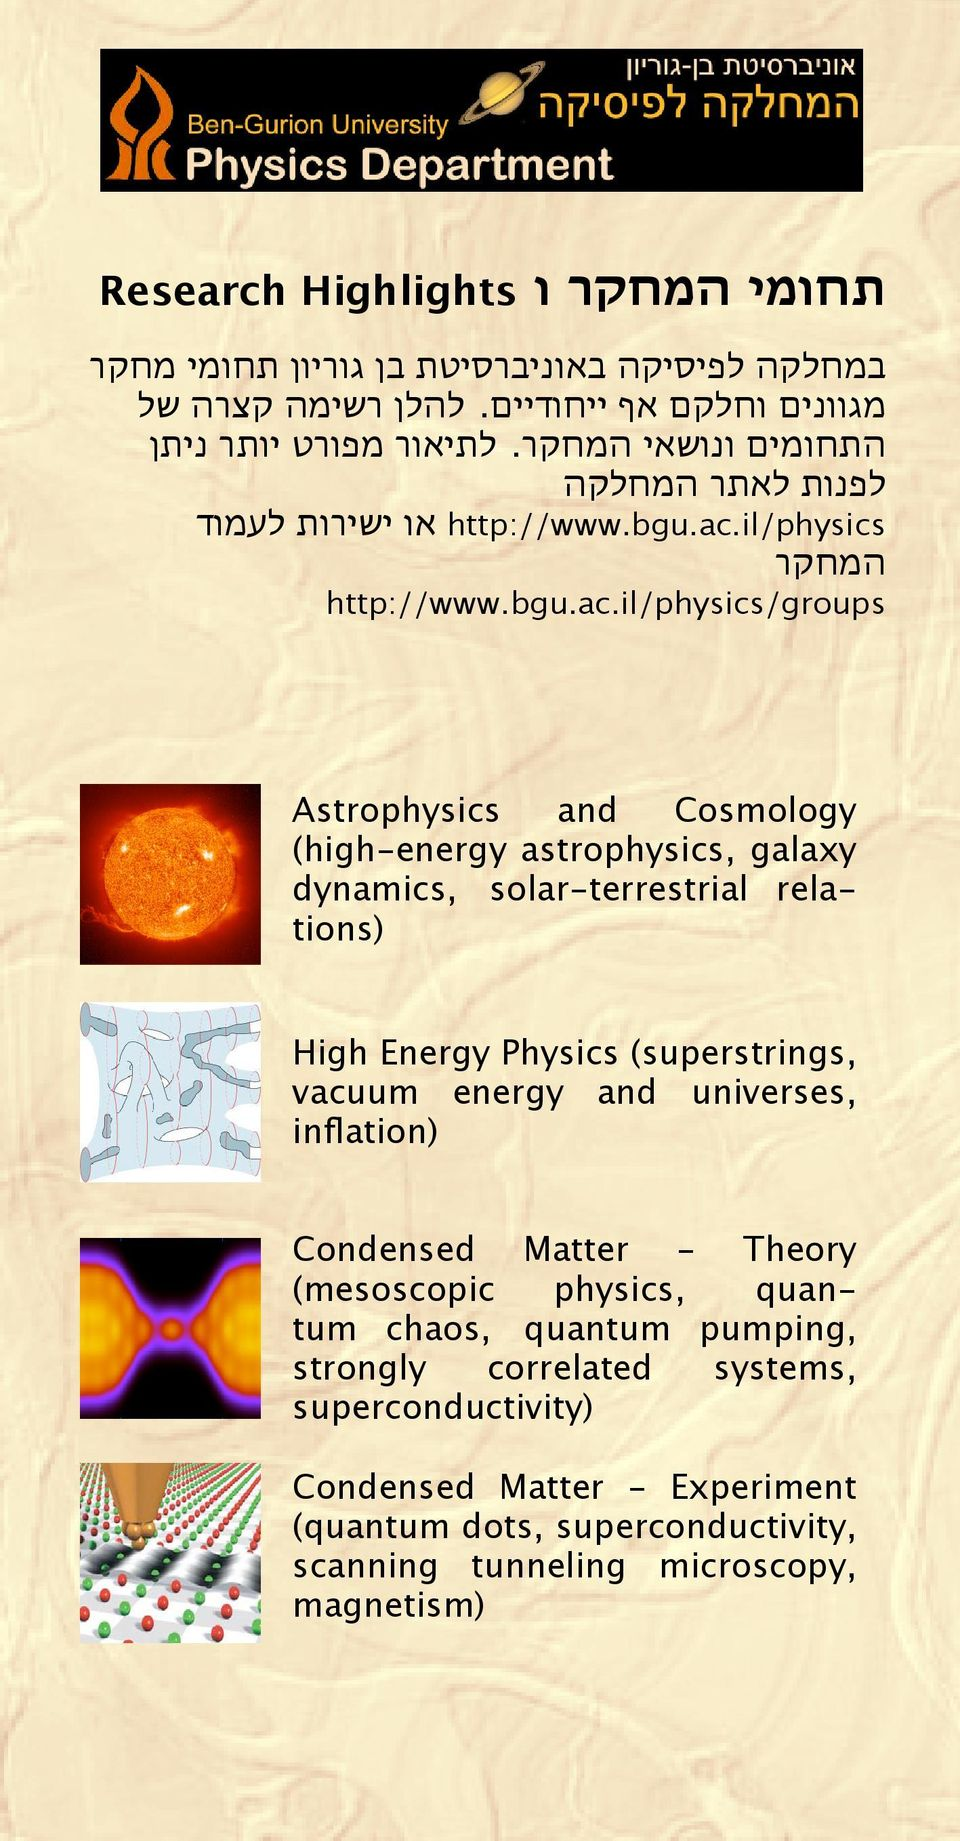 il/physics המחקר http://www.bgu.ac.